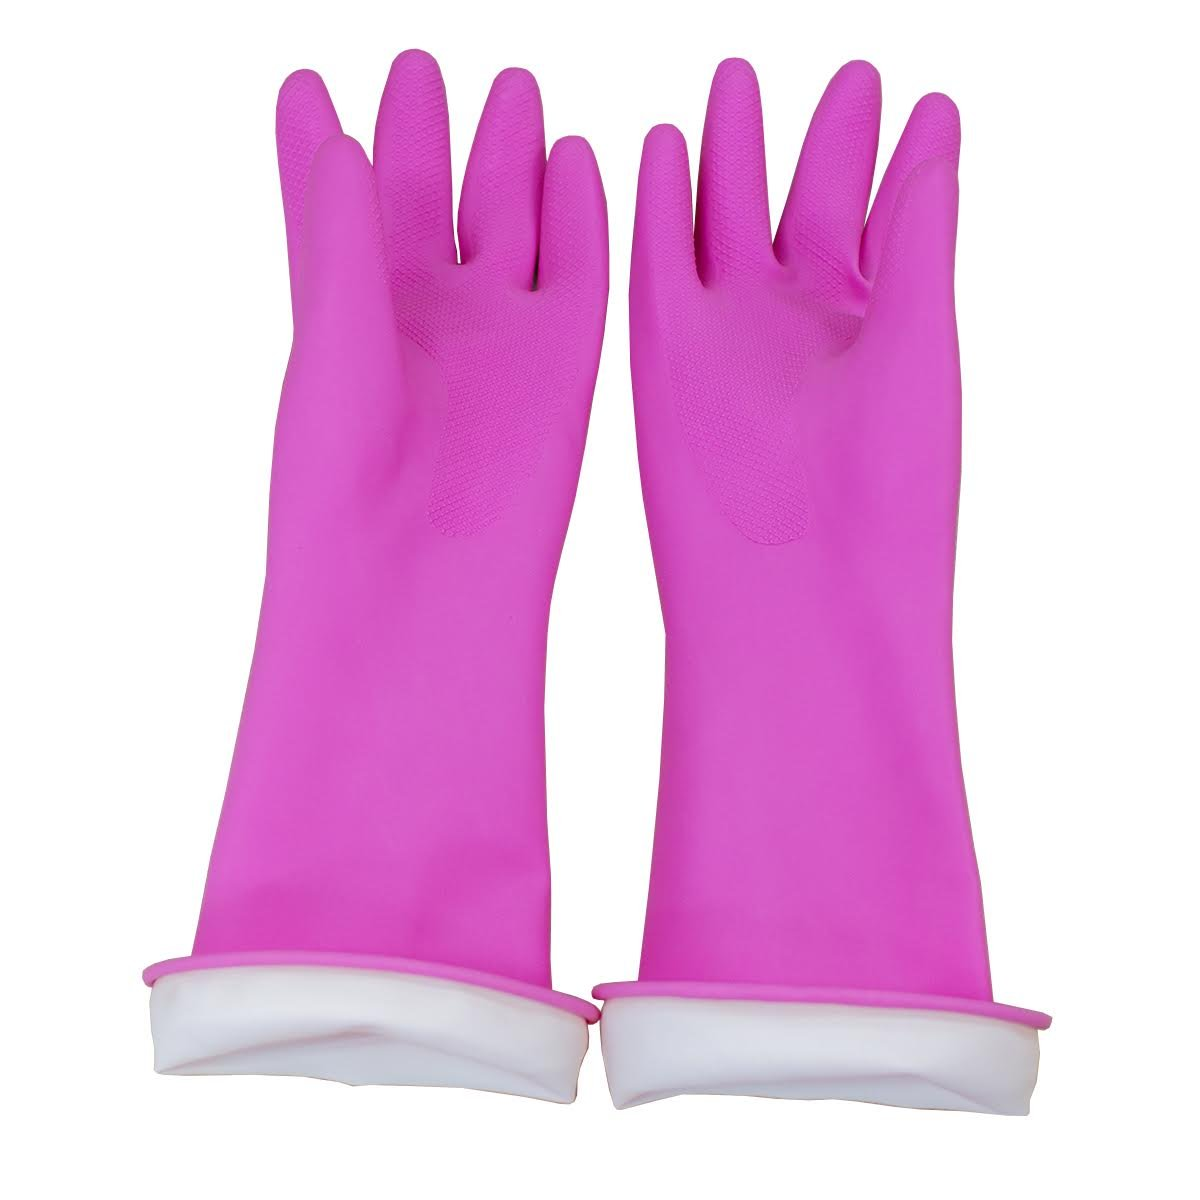 Kids Latex Household Natural Rubber Waterproof Work Playing Hand Protection Washing Cleaning Gardening Painting Gloves (Natural)